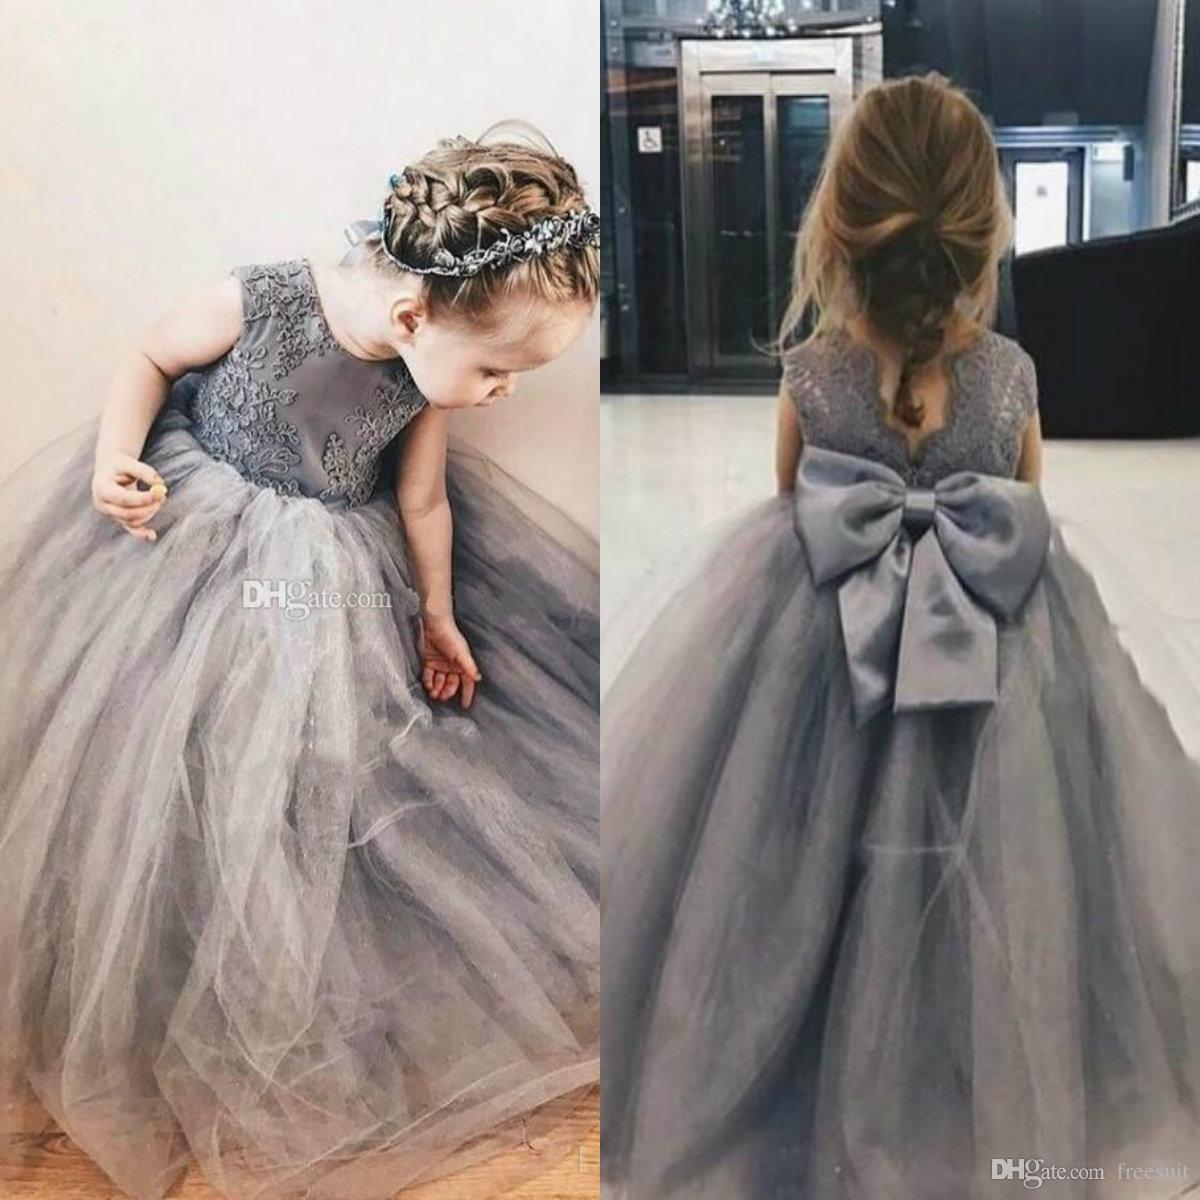 Grey Flower Girl Dresses Jewel Neck Sleeveless Appliqued Ruffle V Back Bow Fluffy Girl Pageant Gowns Custom Made Birthday Gown